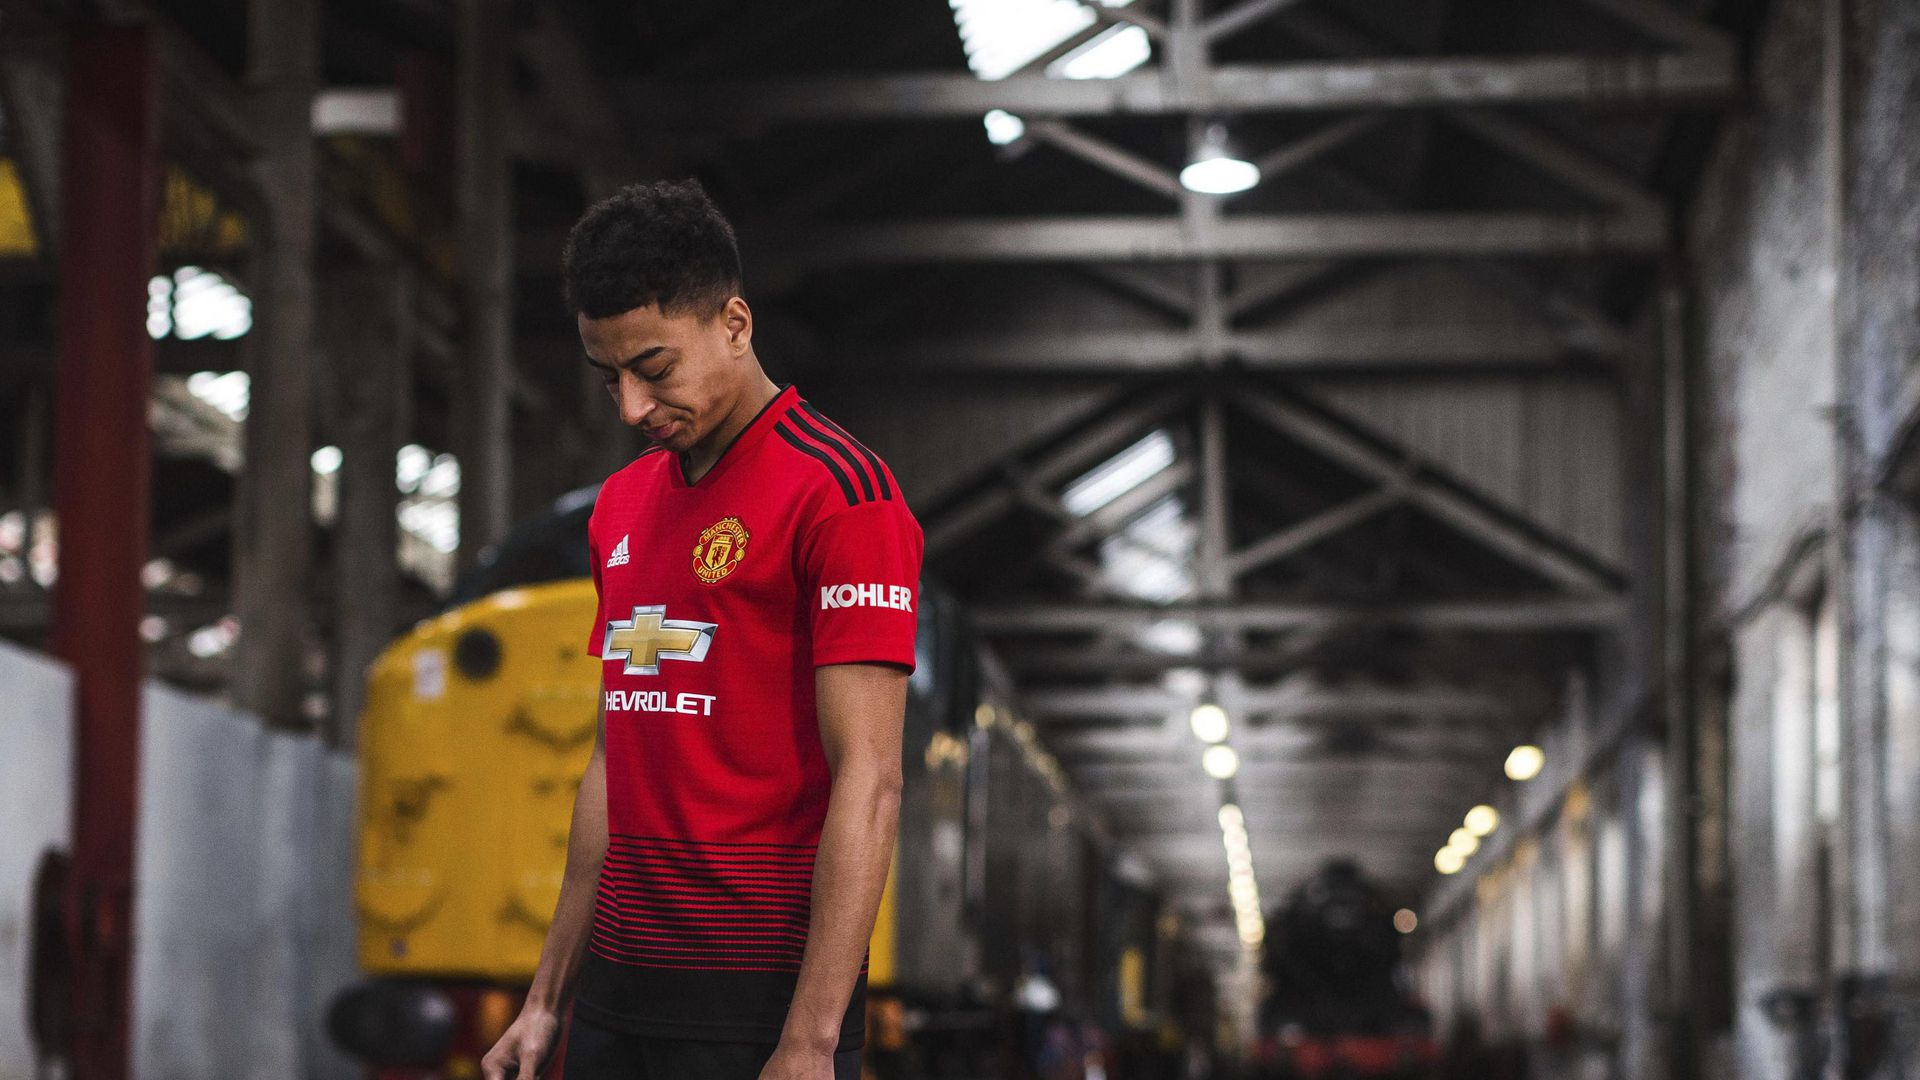 Adidas Reveals New Manchester United Home Kit For 2018 19 Season Manchester United